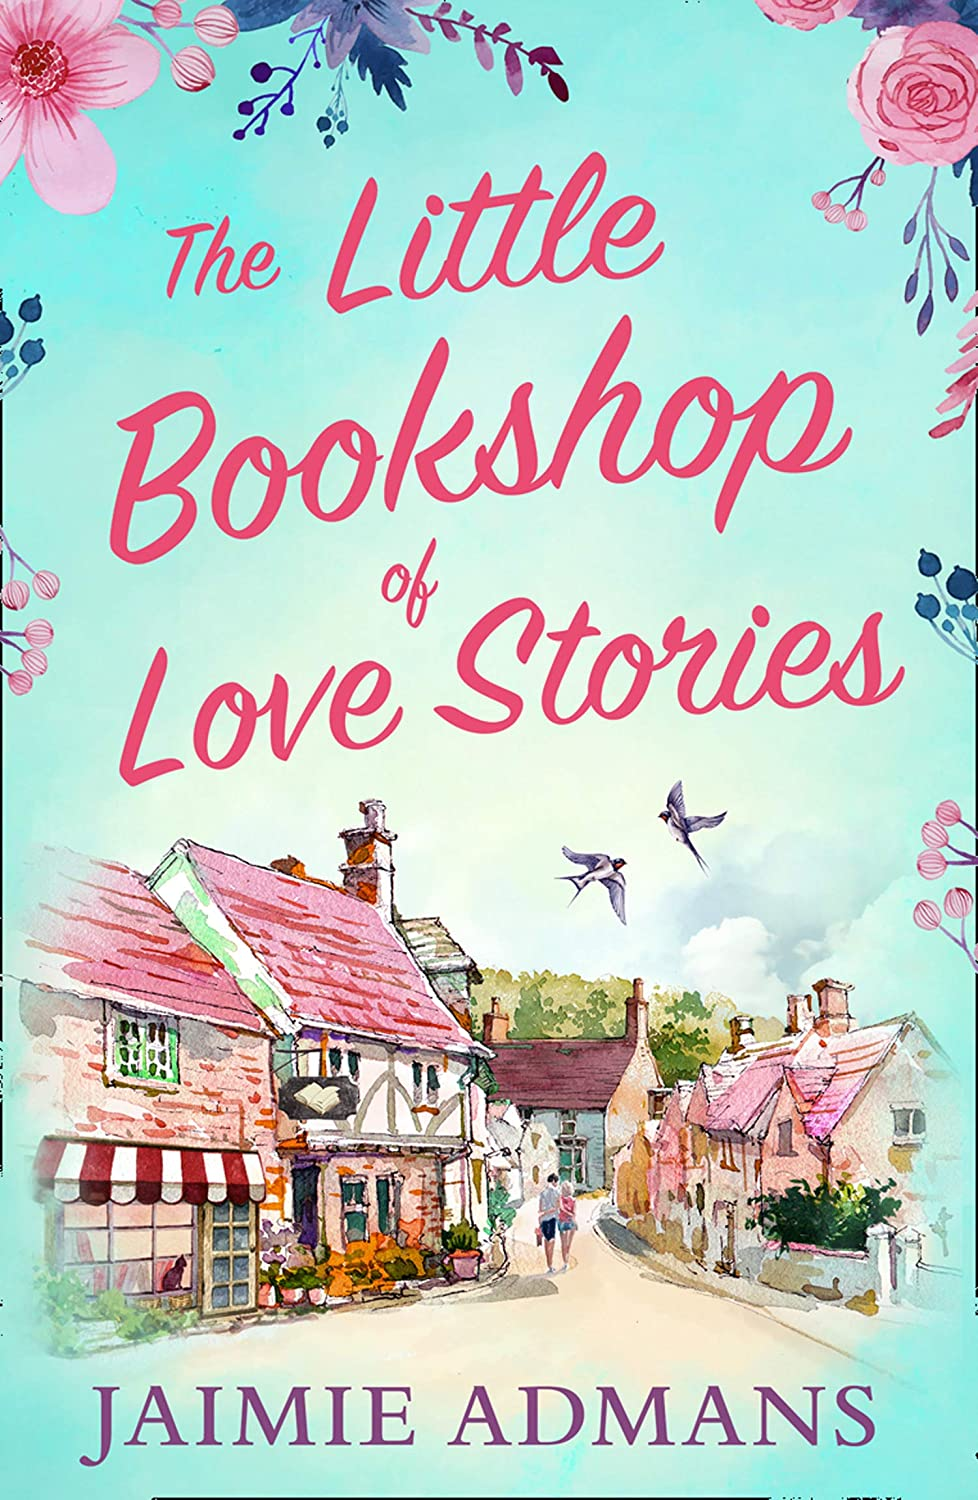 The Little Bookshop Of Love Stories by Jaimie Admans Book cover